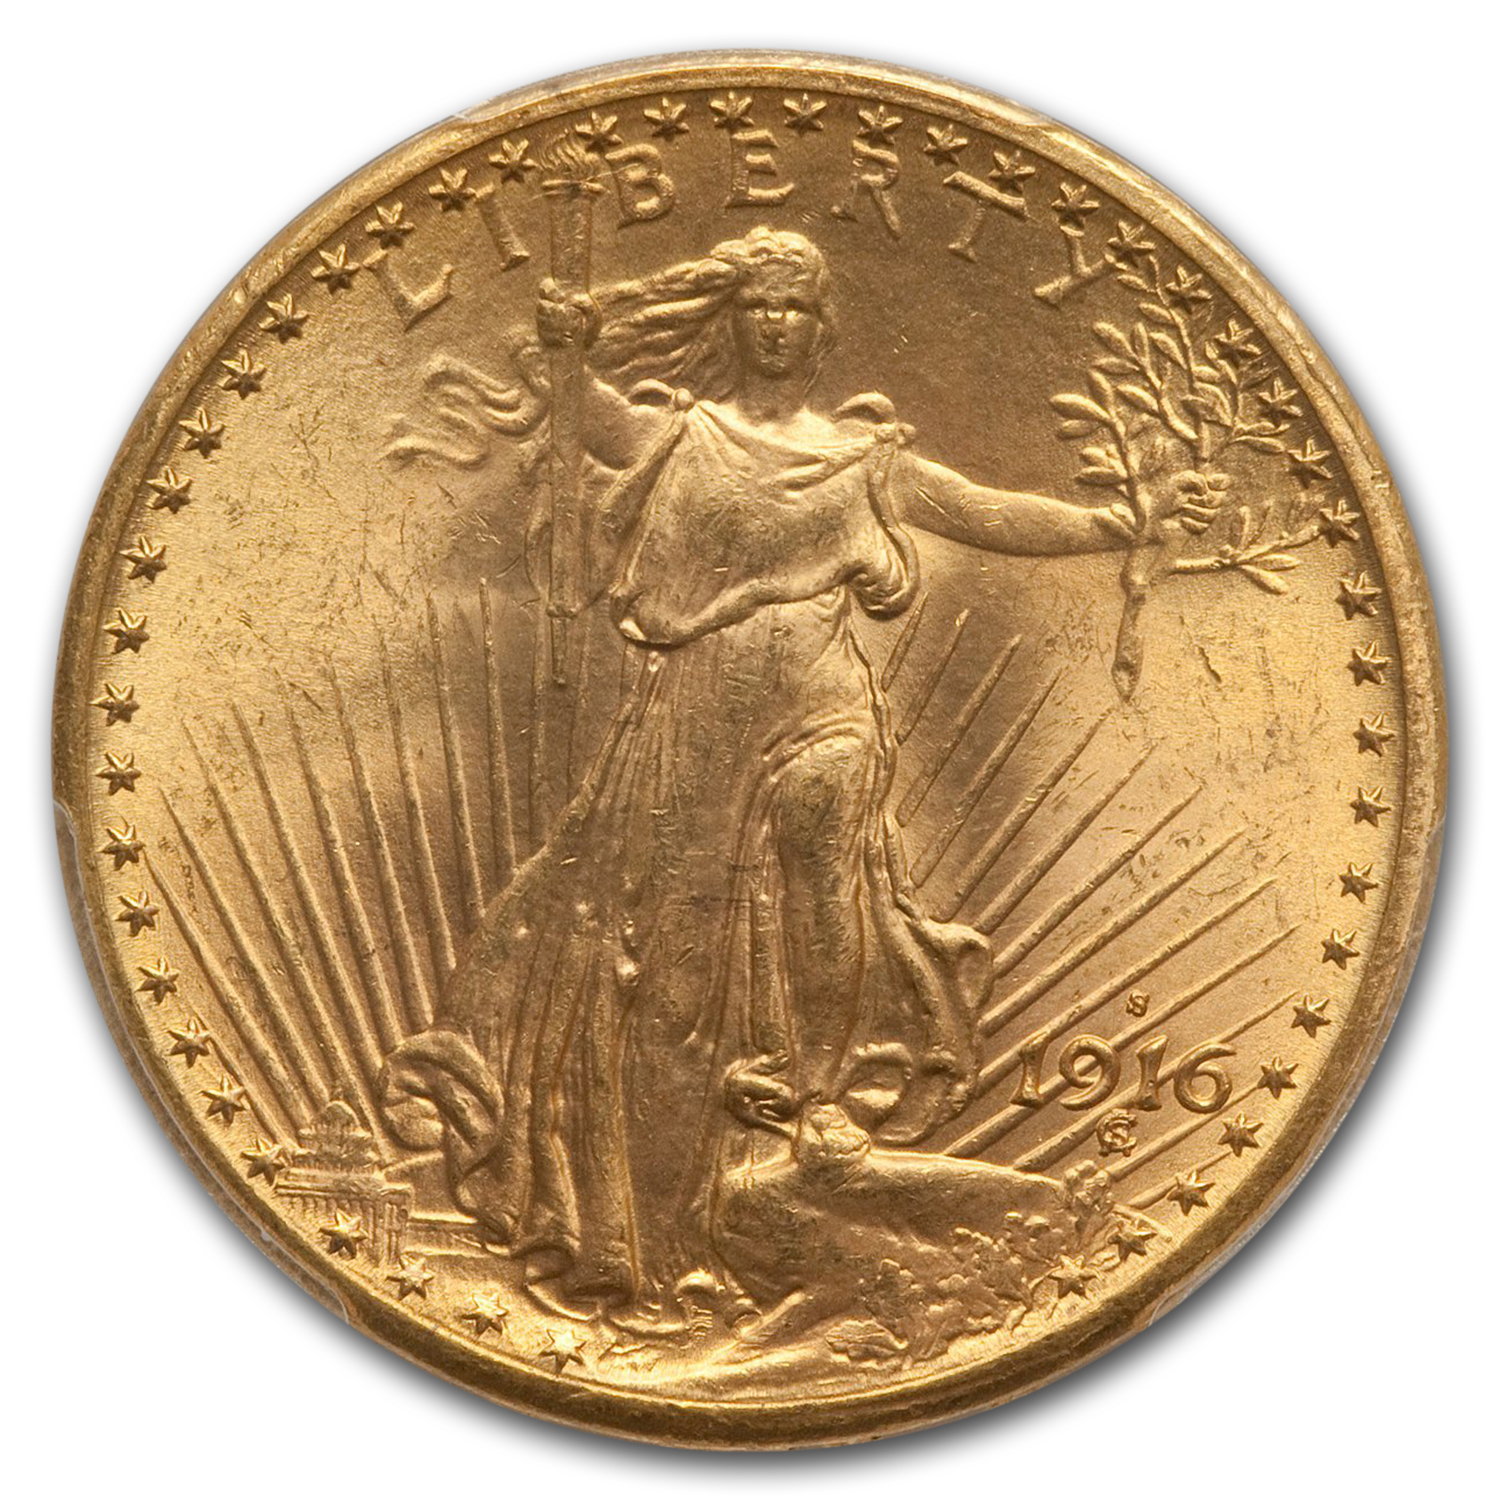 1916-S $20 St. Gaudens Gold Double Eagle - MS-66 PCGS